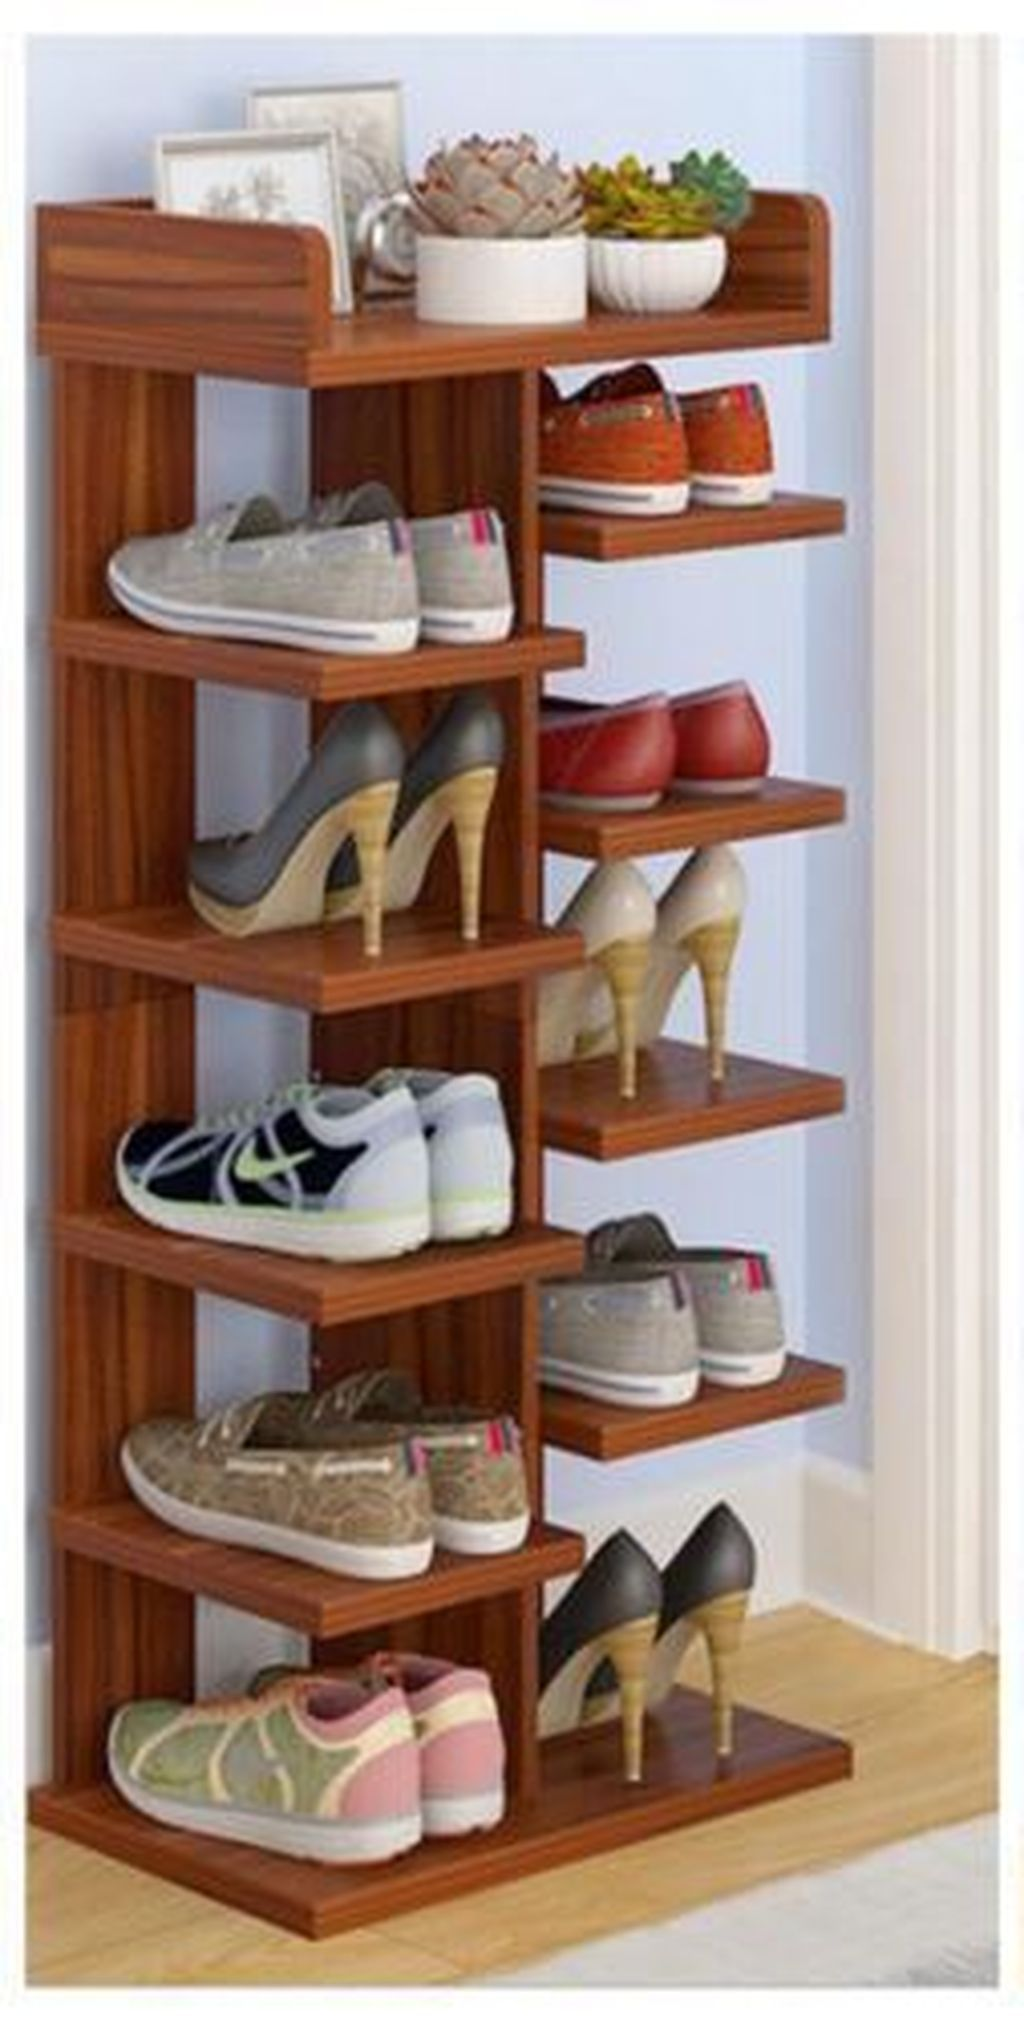 36 Delightful Diy Shoe Rack Design Ideas To Keep Your Shoes Nicely